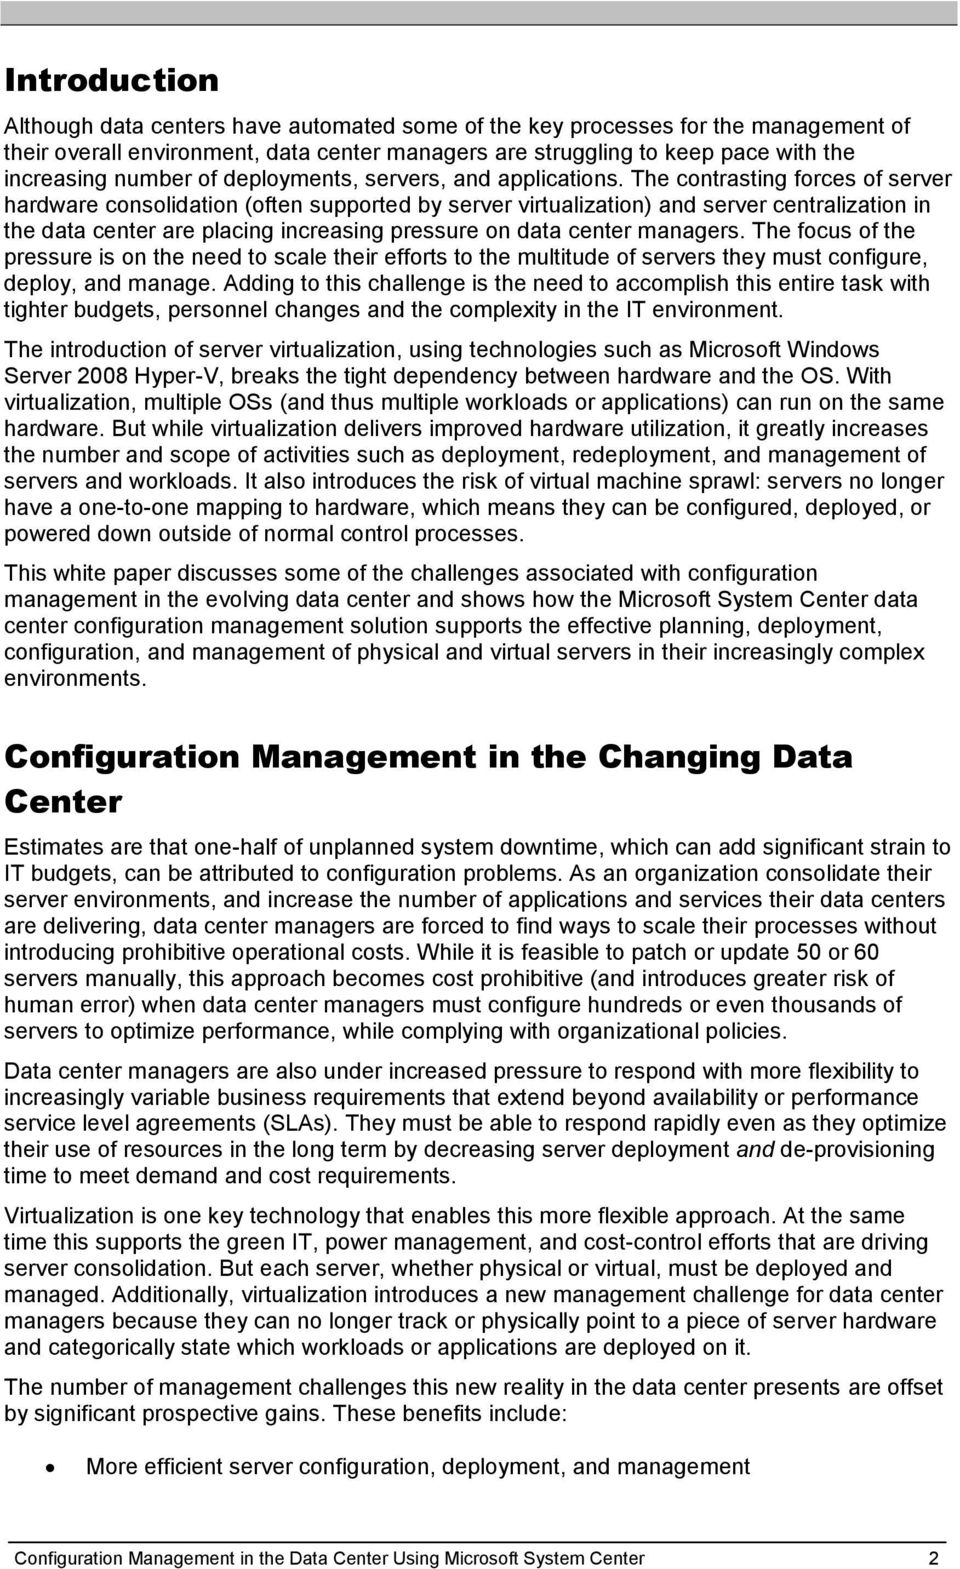 The contrasting forces of server hardware consolidation (often supported by server virtualization) and server centralization in the data center are placing increasing pressure on data center managers.